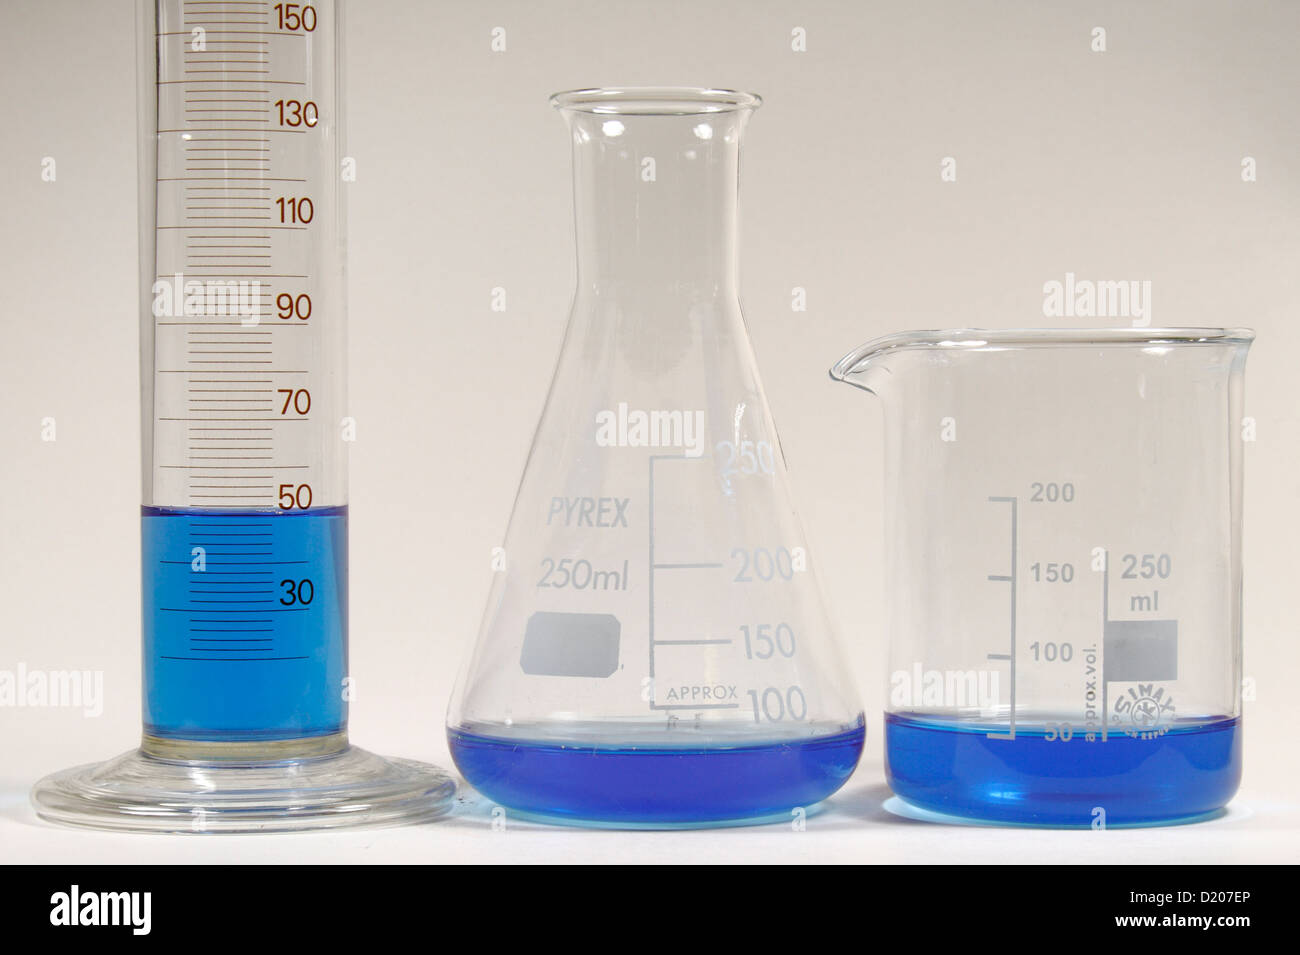 50ml Of Blue Liquid In A Measuring Cylinder Conical Flask